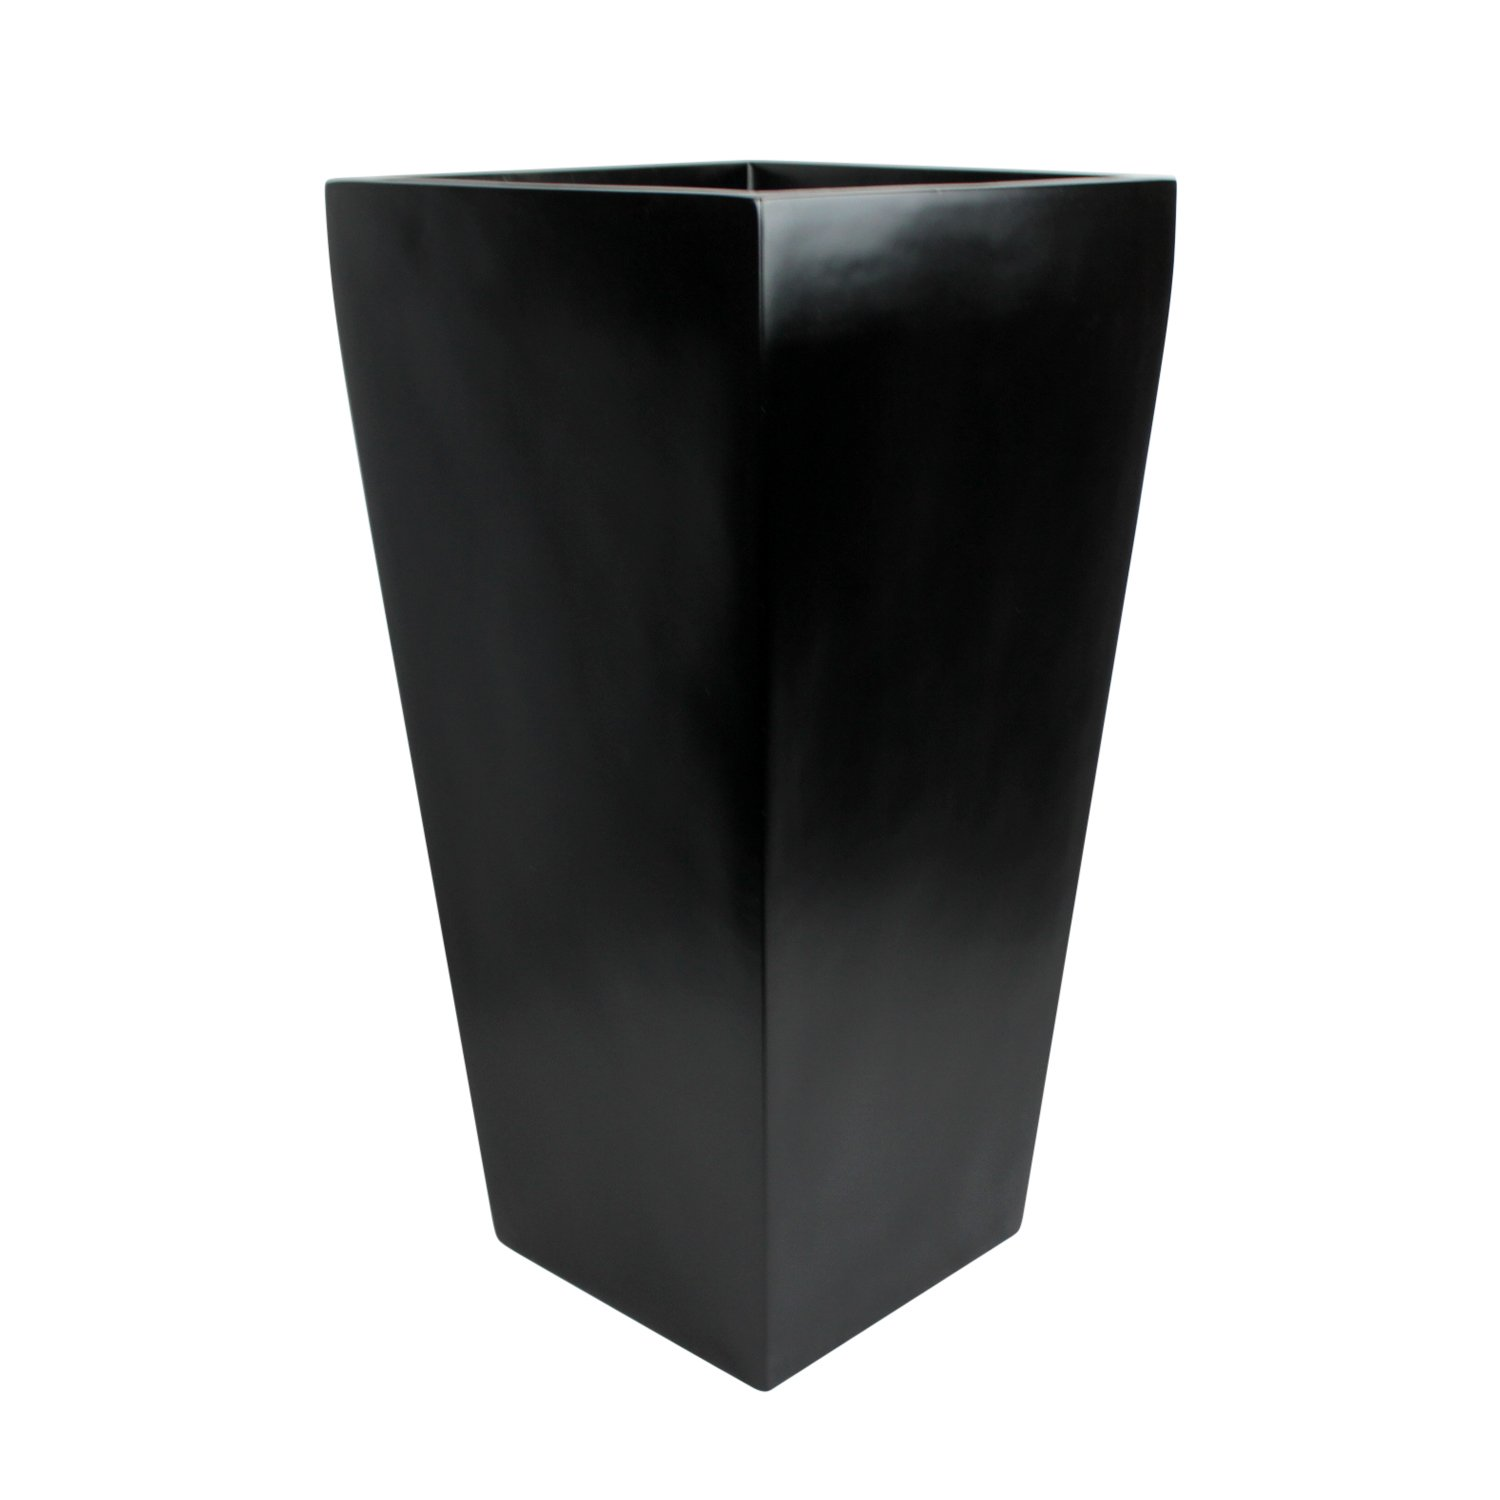 Edinburgh Tall Square Fiberglass Planter (L:15'' x W:15'' x H:30'', Matte Black) by The Fiberglass Depot